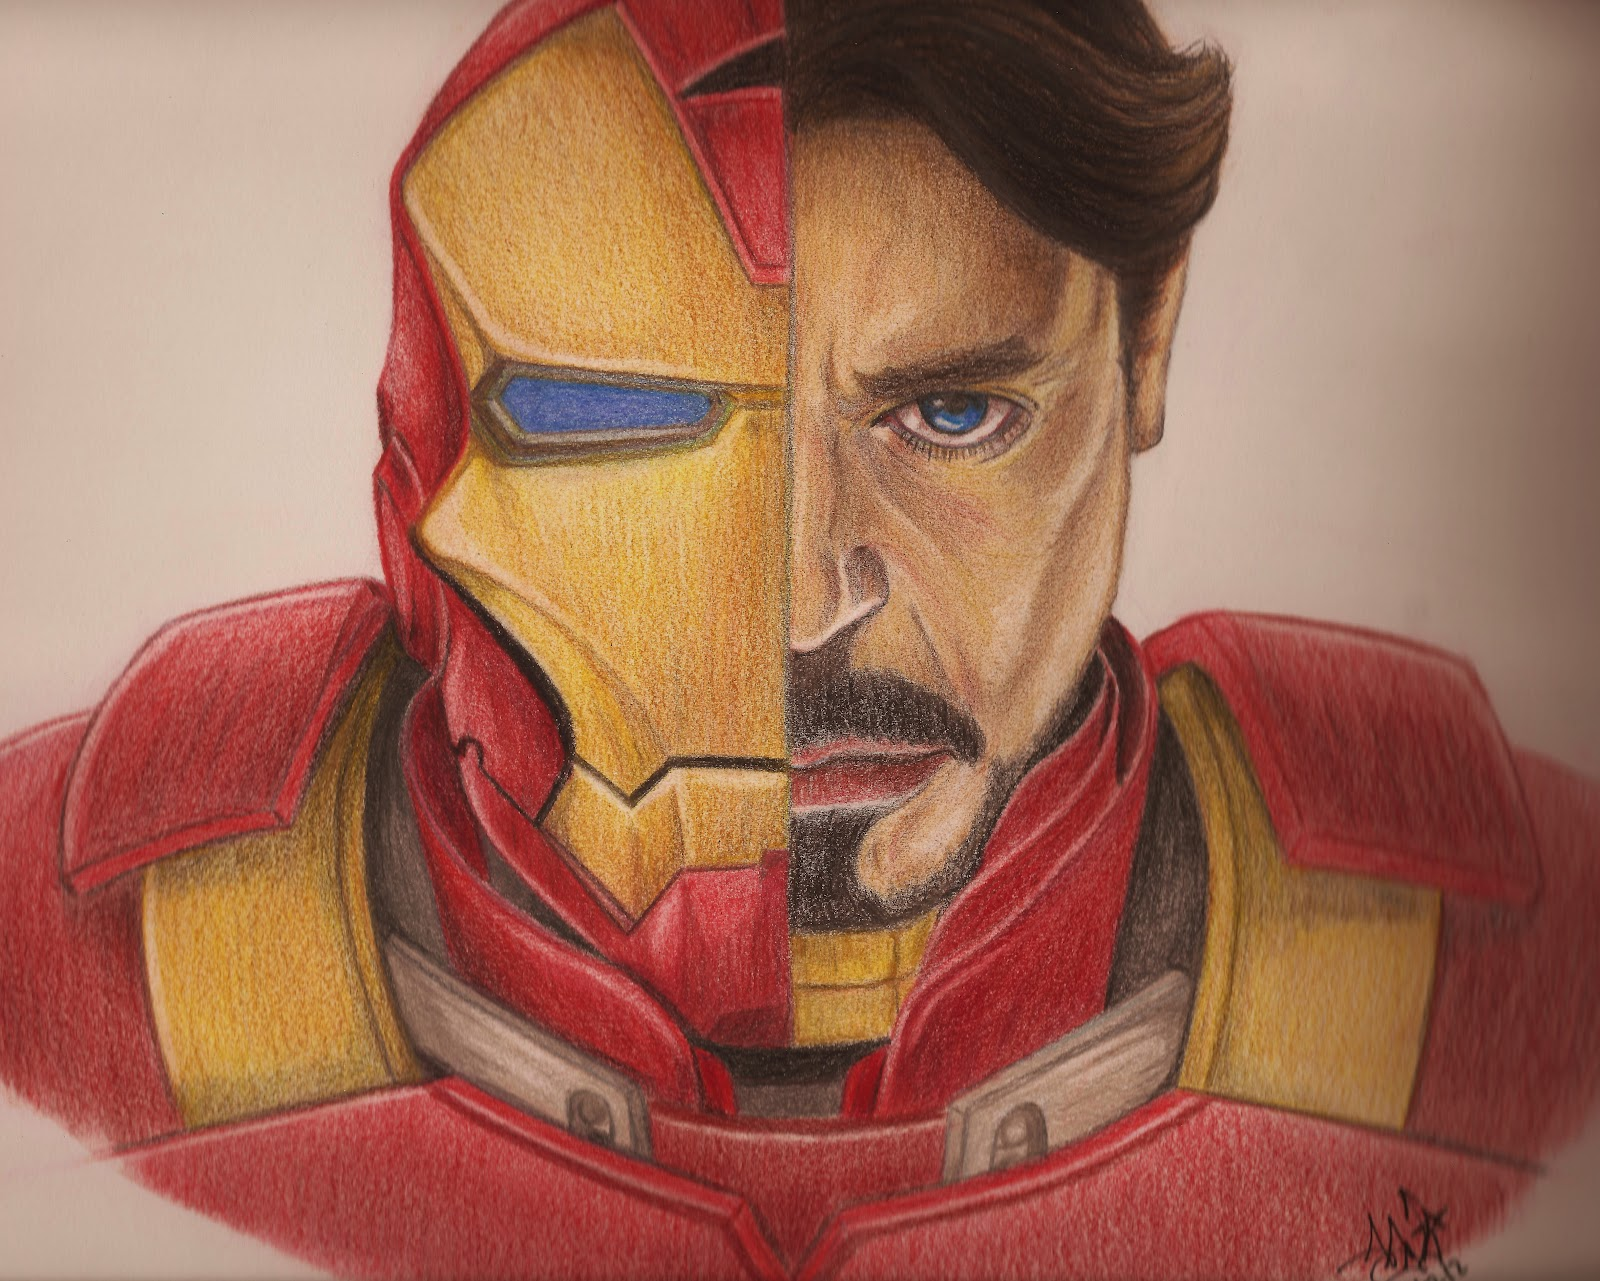 DIBUJOS Y RETRATOS: IR... Robert Downey Jr Facebook